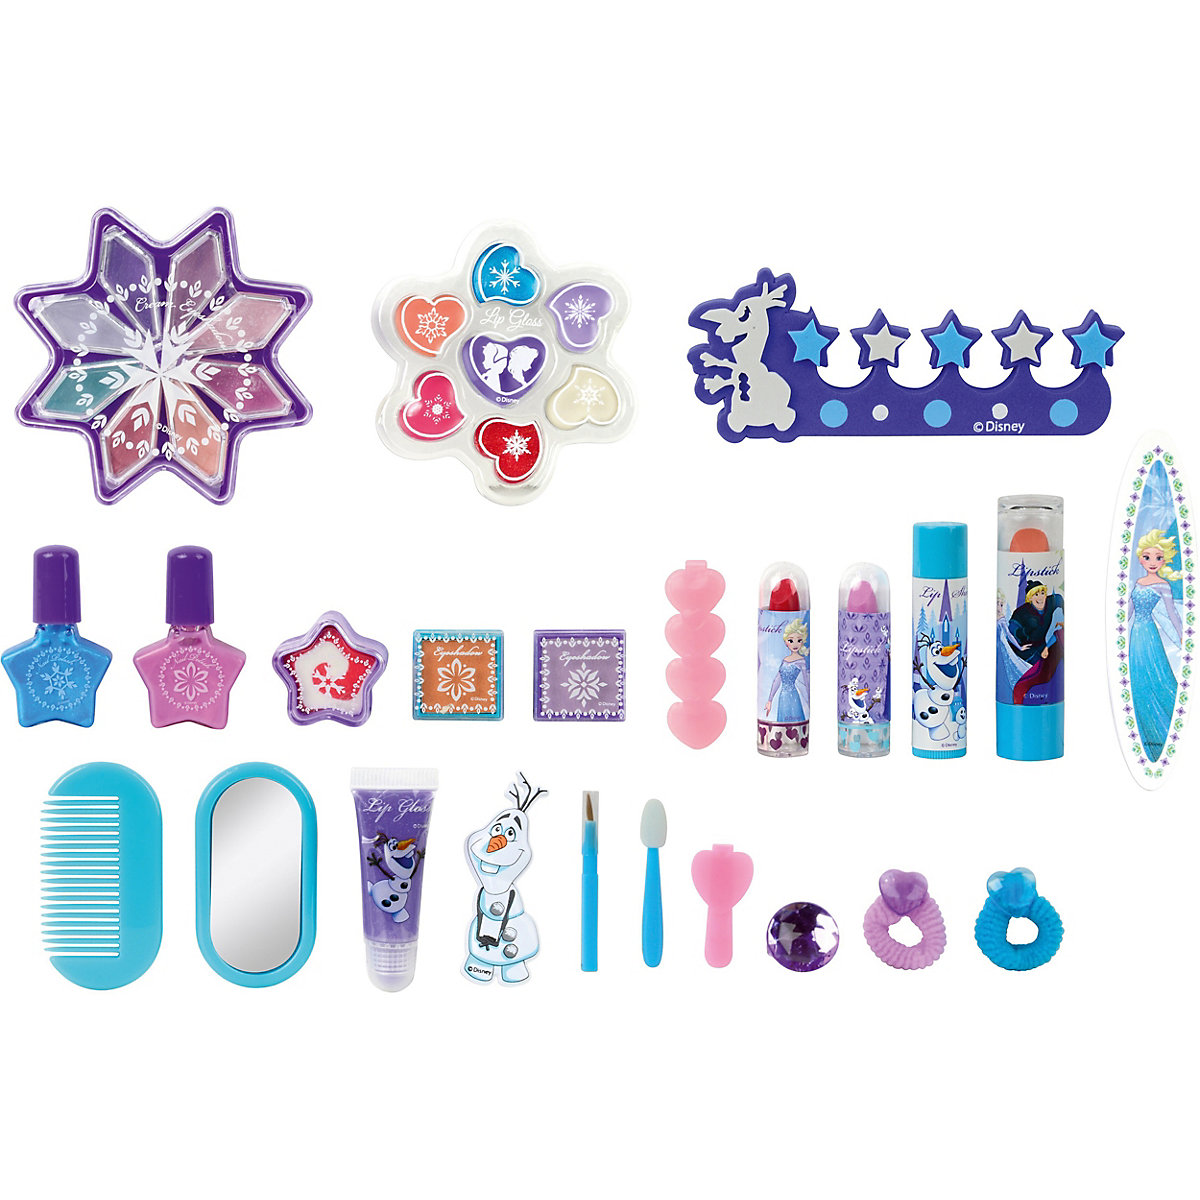 Inhalt FROZEN II Beauty Adventskalender 2020